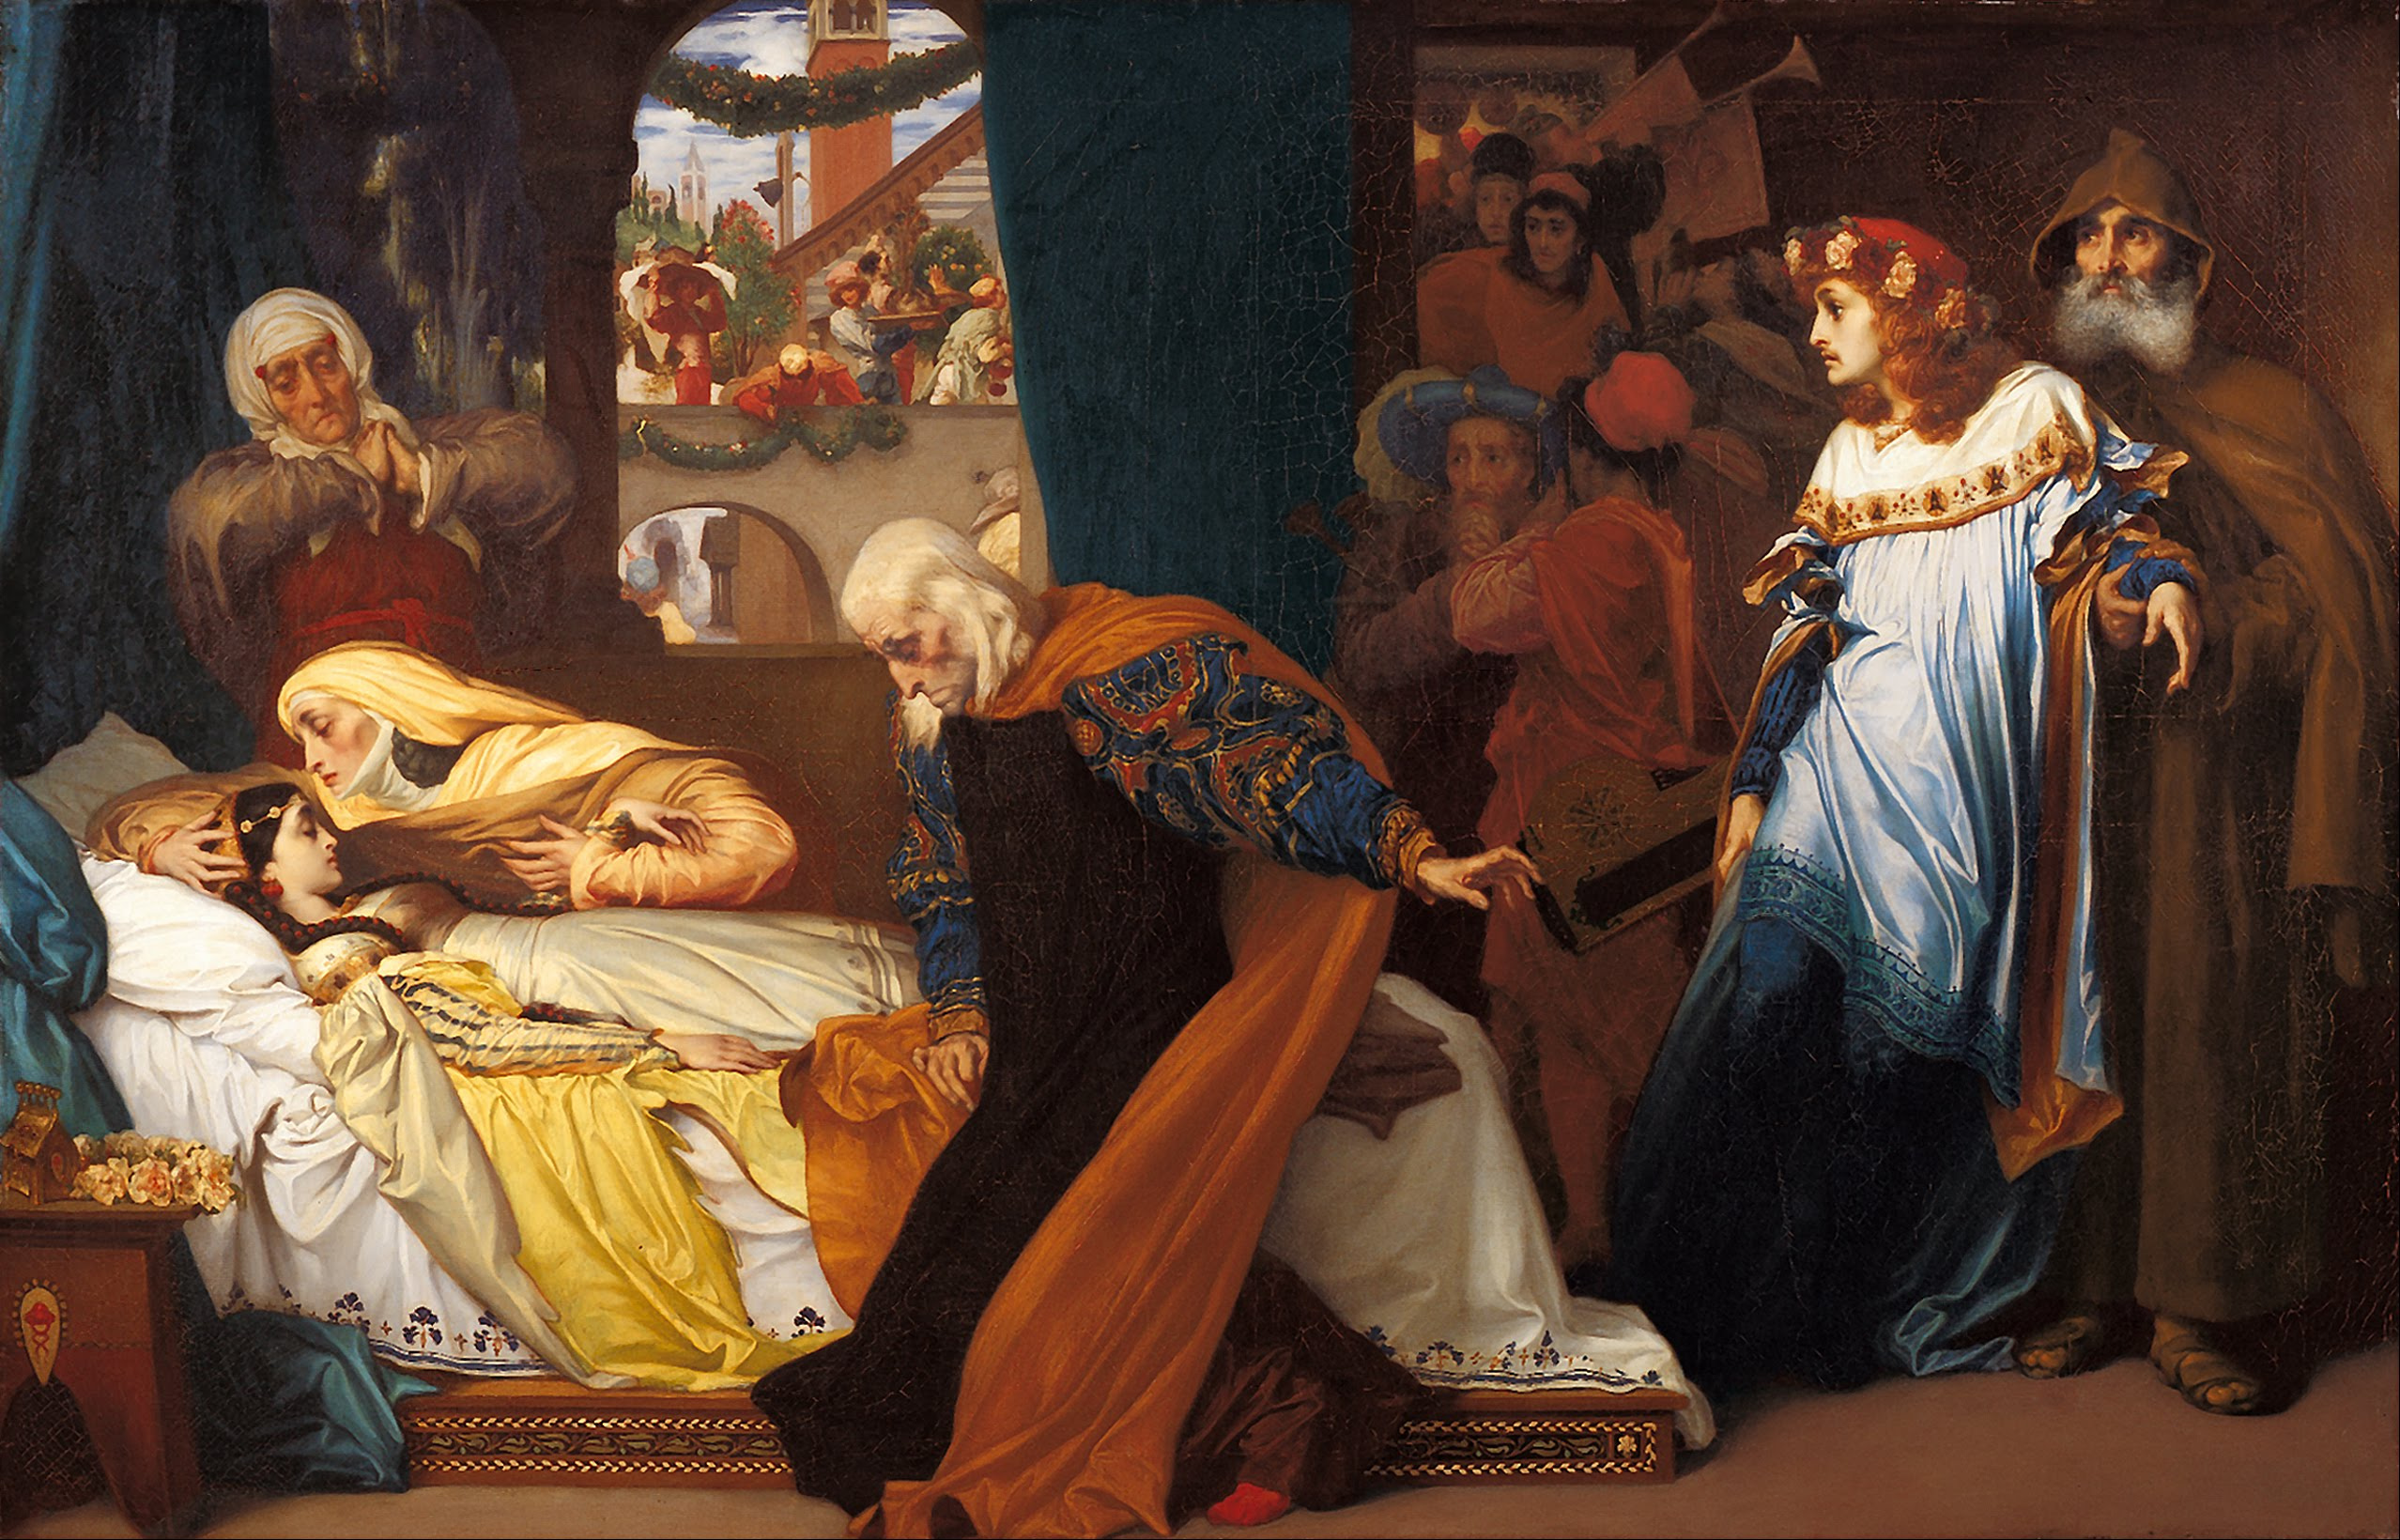 Frederic_Leighton_-_The_feigned_death_of_Juliet_-_Google_Art_Project